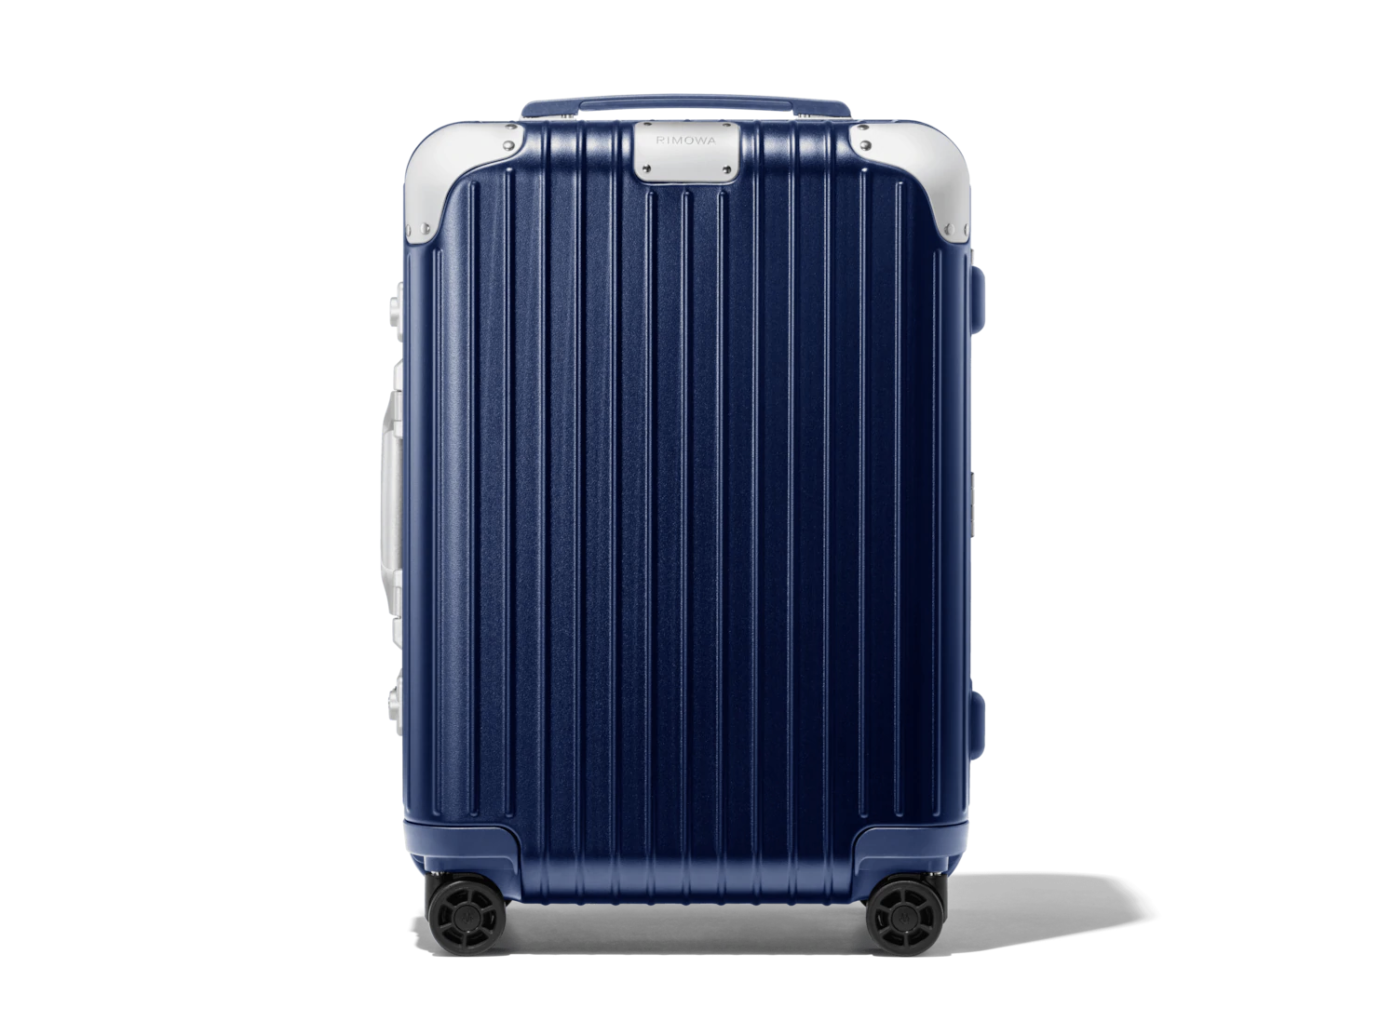 Rimowa Hybrid Cabin Carry-On 22-Inch Suitcase